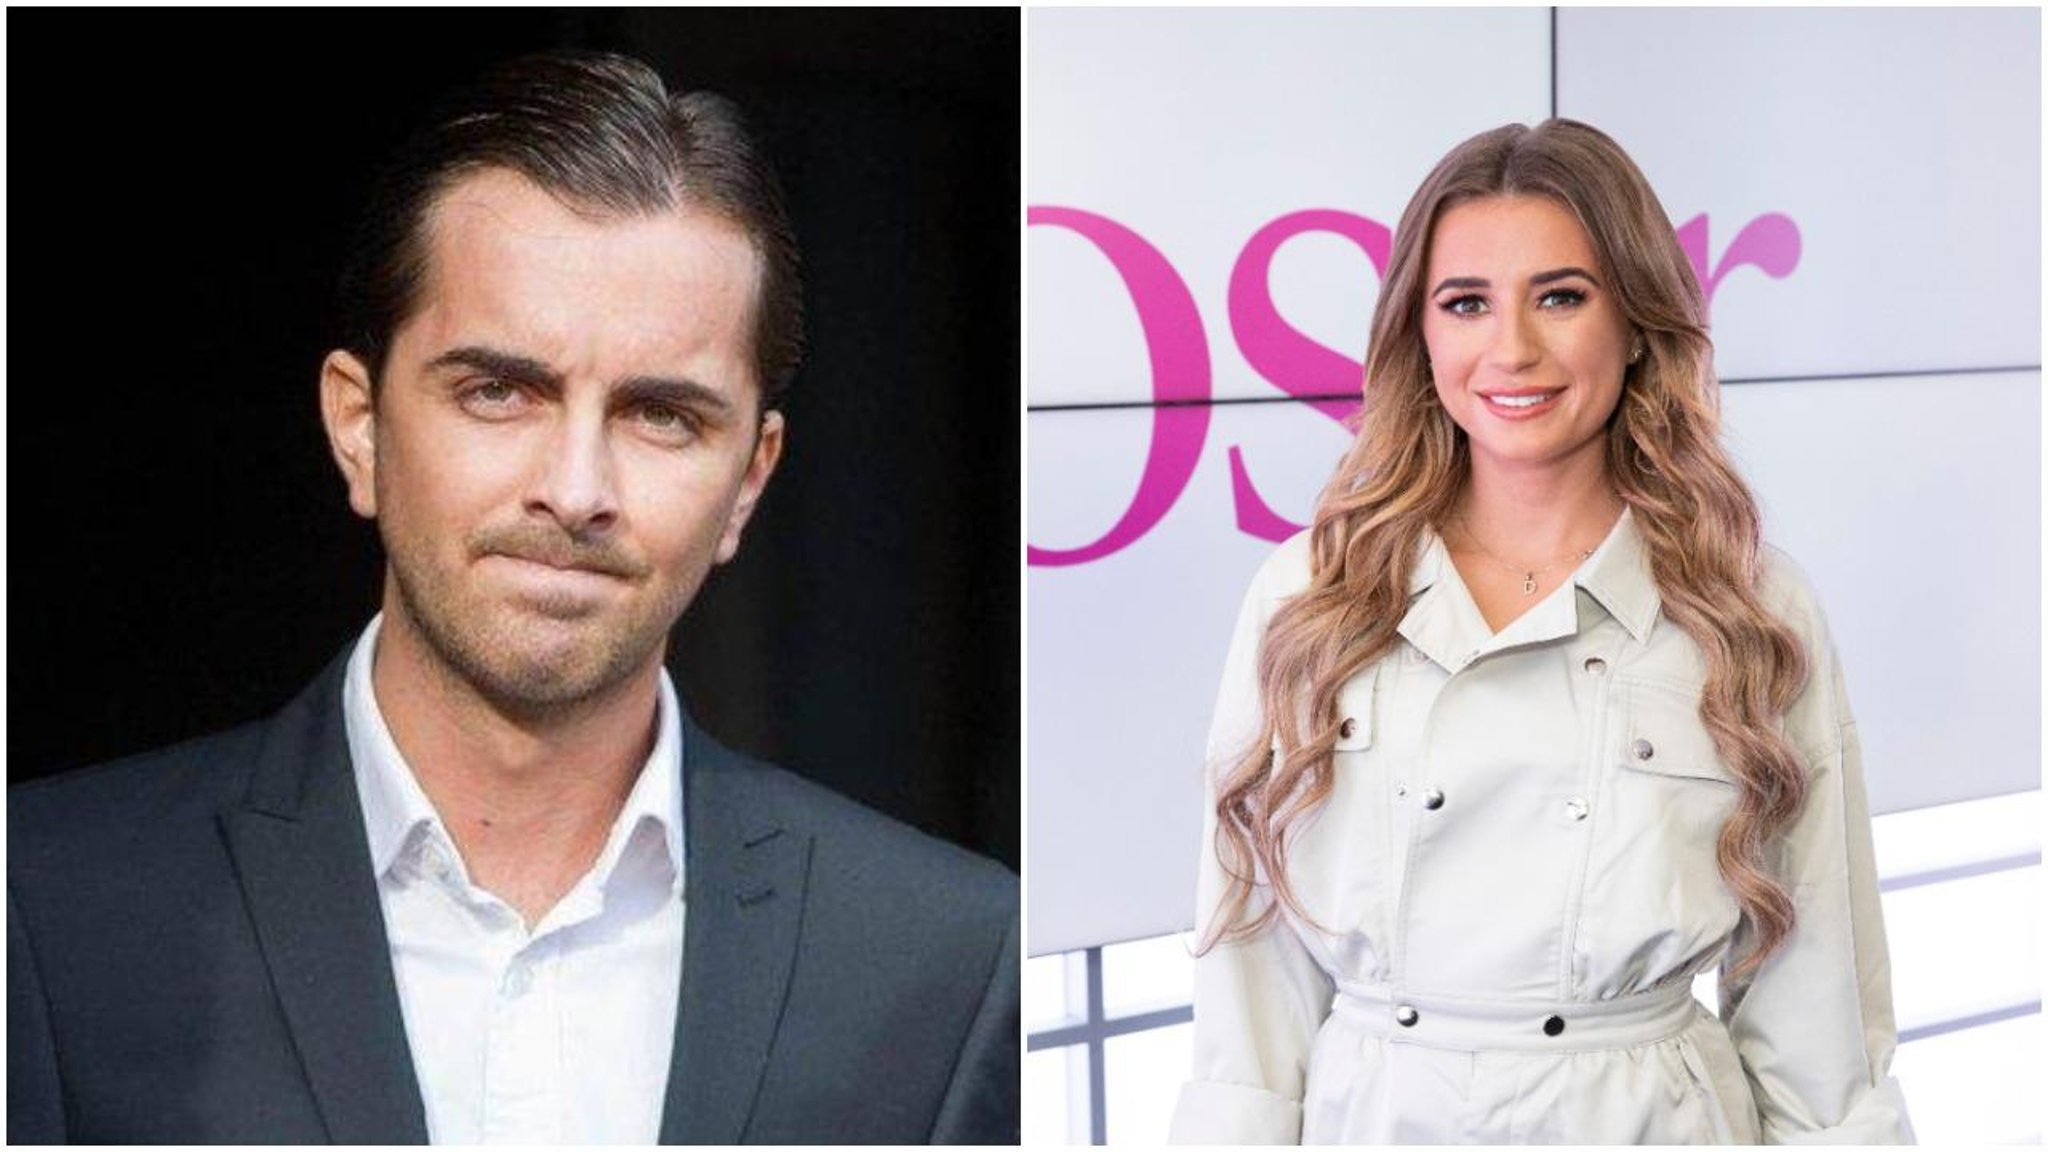 Who's Dani Dyer's boyfriend Sammy Kimmence – and why has he been sentenced to jail?